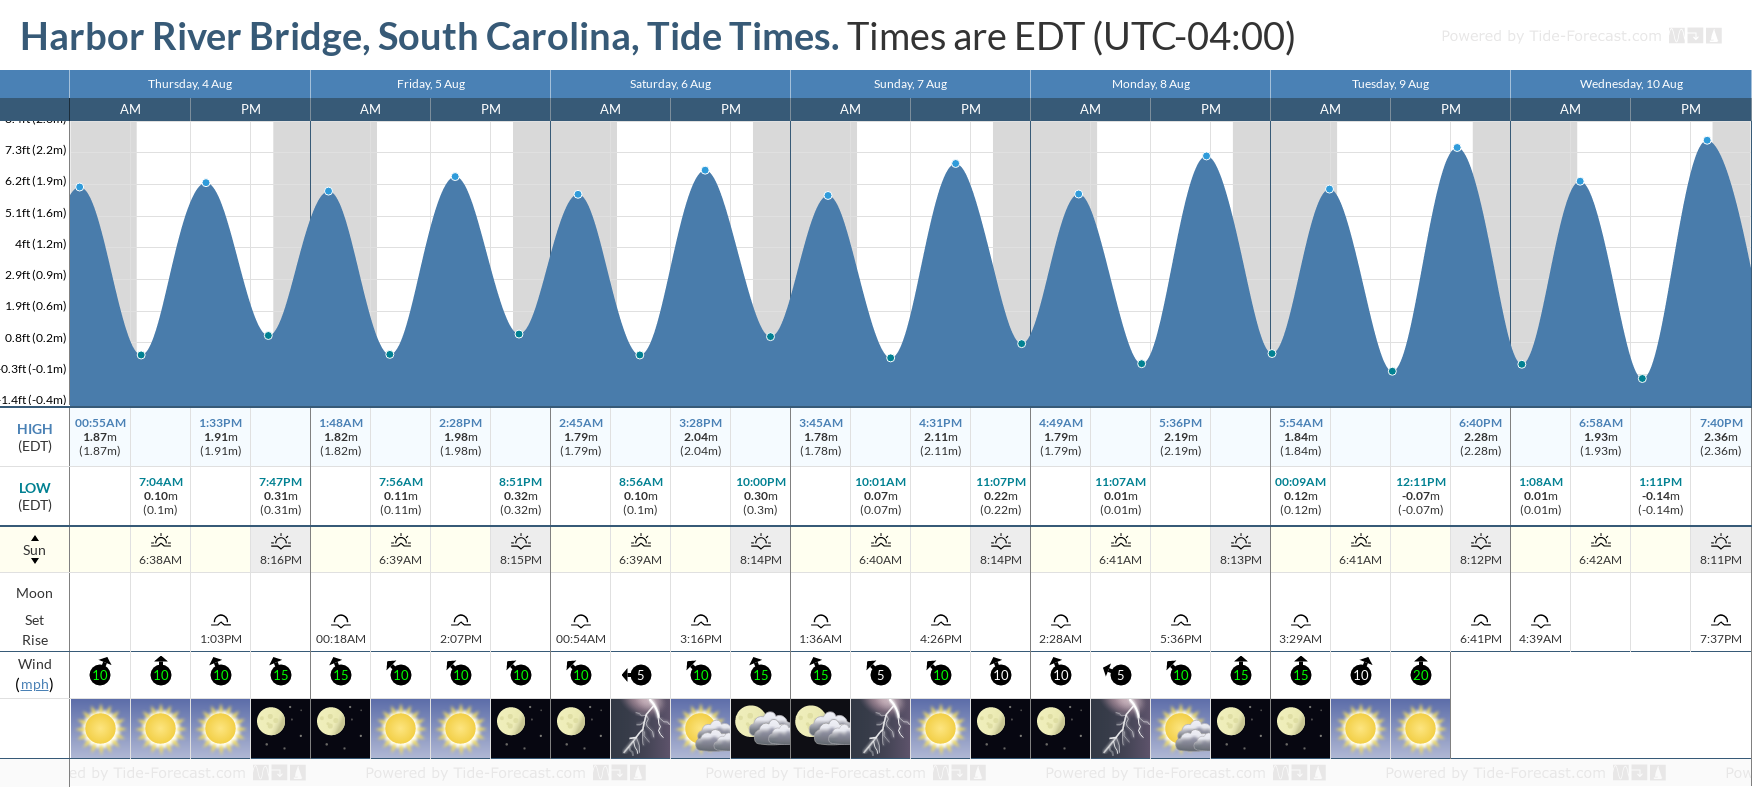 Harbor River Bridge, South Carolina Tide Chart including high and low tide tide times for the next 7 days